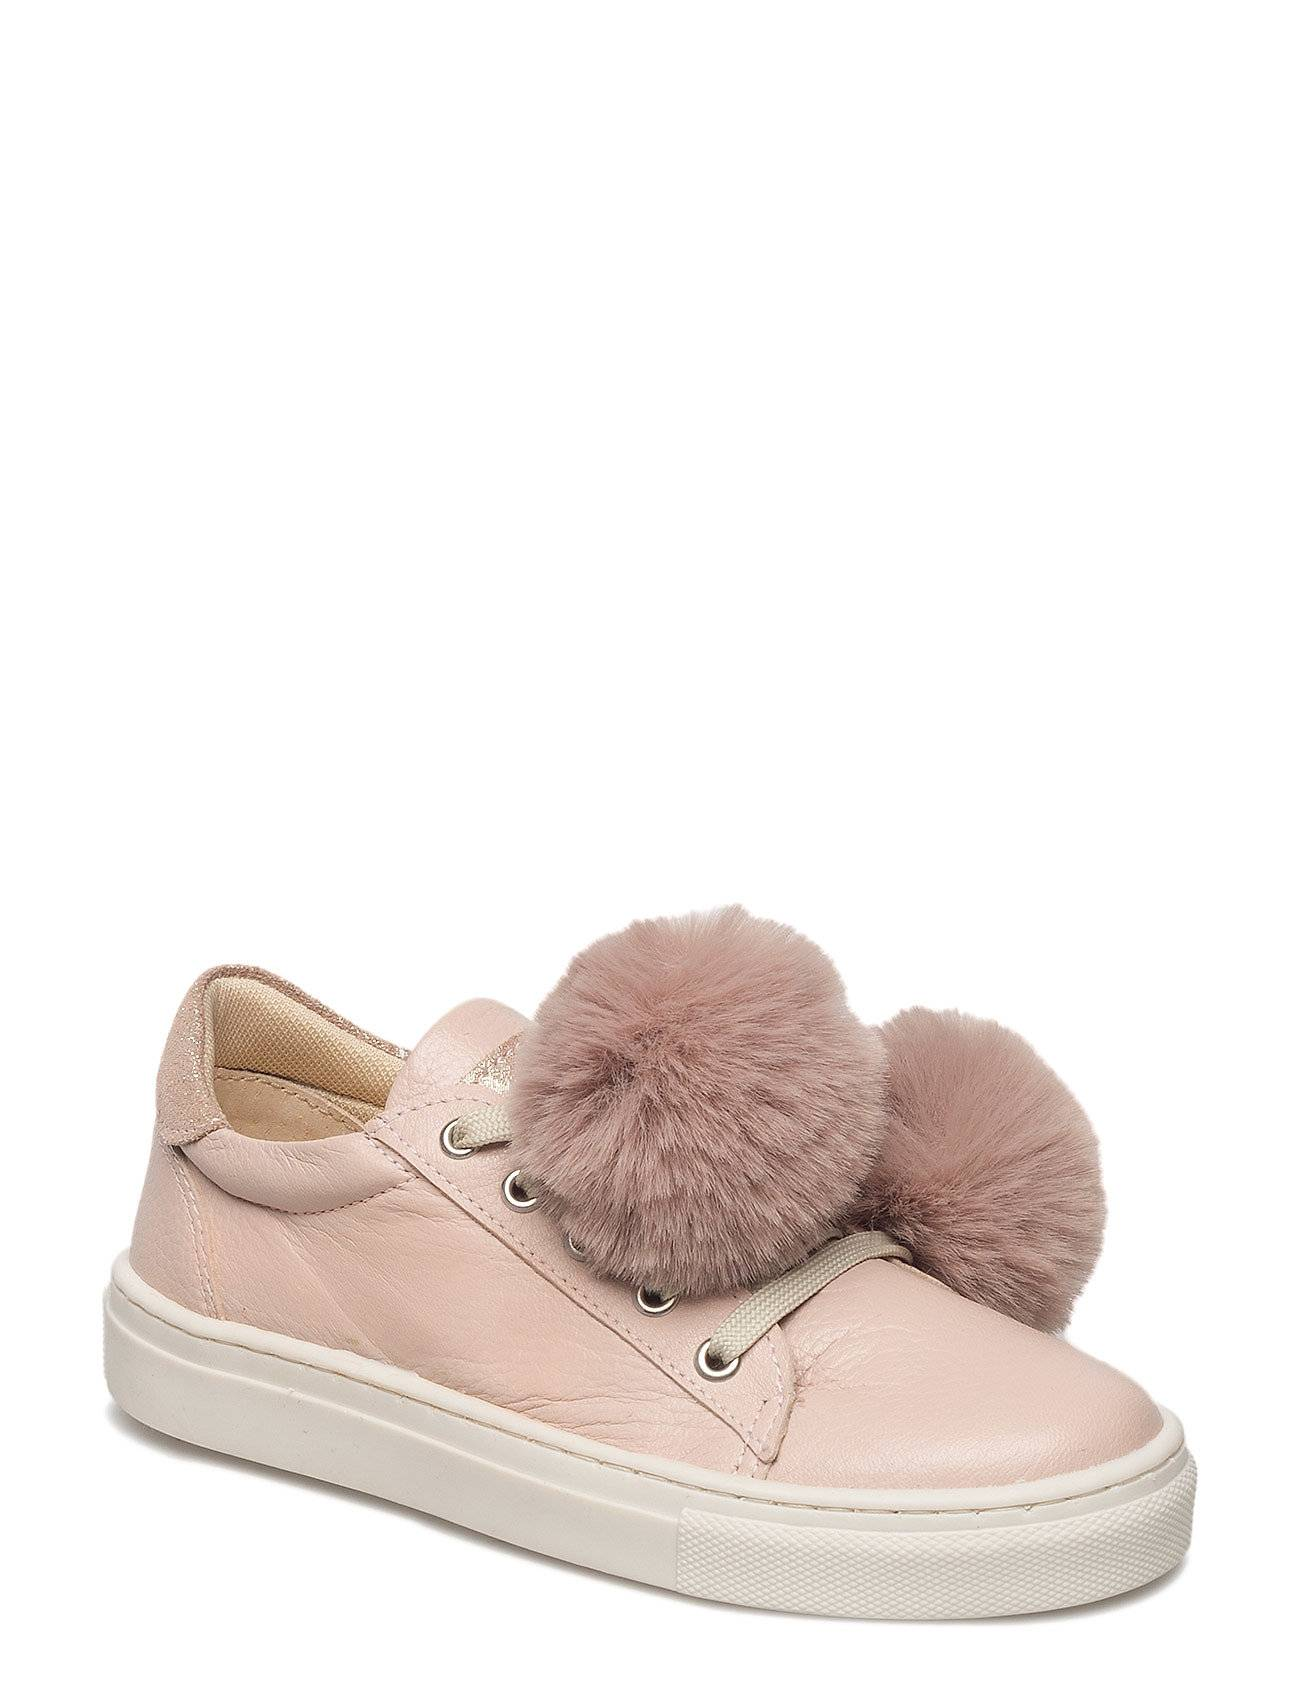 Move by Melton Girls - Sneaker With Detail